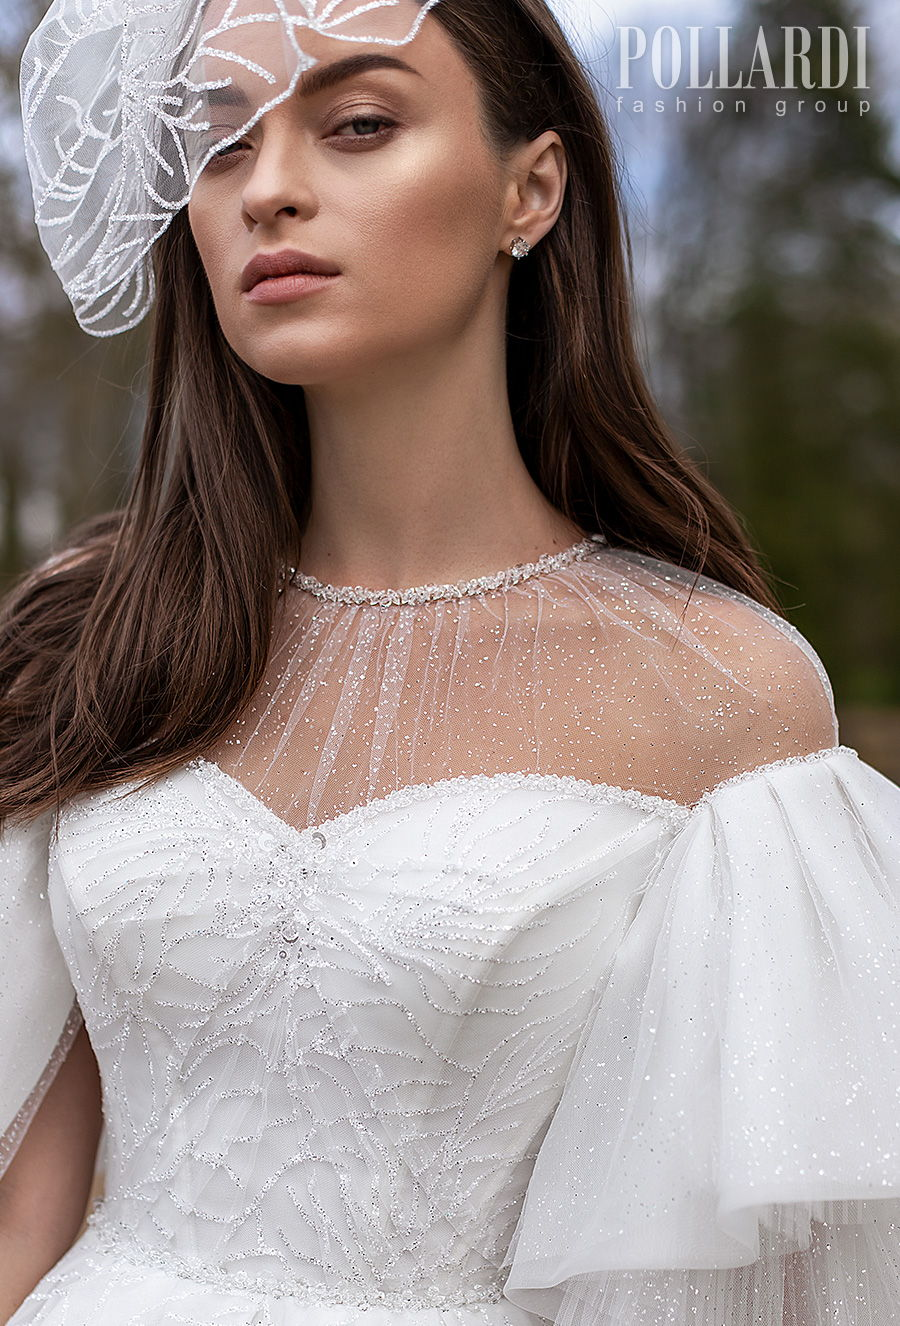 pollardi 2021 royalty bridal half lantern sleeves illusion jewel sweetheart neckline full embellishment romantic princess a  line wedding dress sheer keyhole back chapel train (mightiness) zv